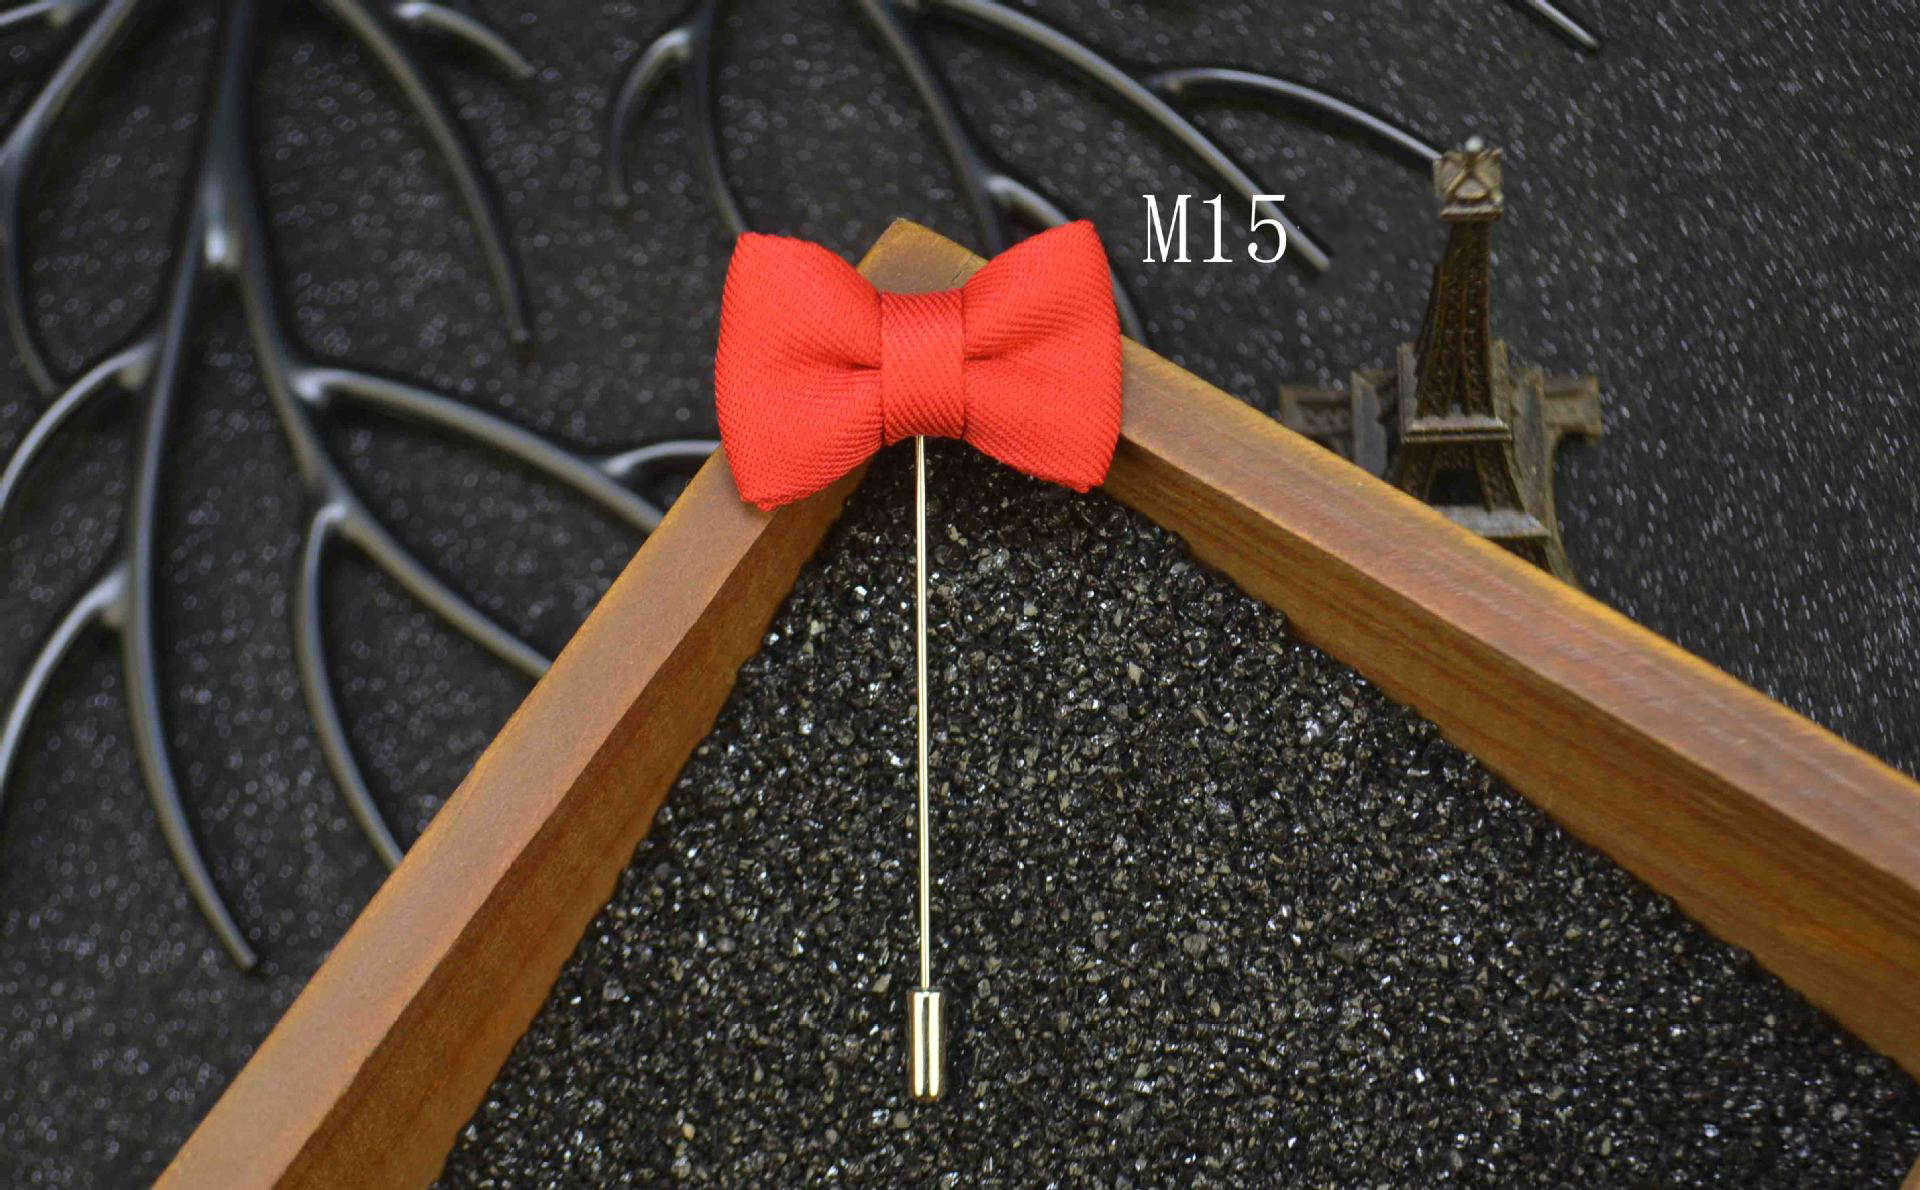 LooPoP Men Tie Clip Fire Balloon Art Stainless Tie Pins for Business Wedding Shirts Tie Clips Include Gift Box